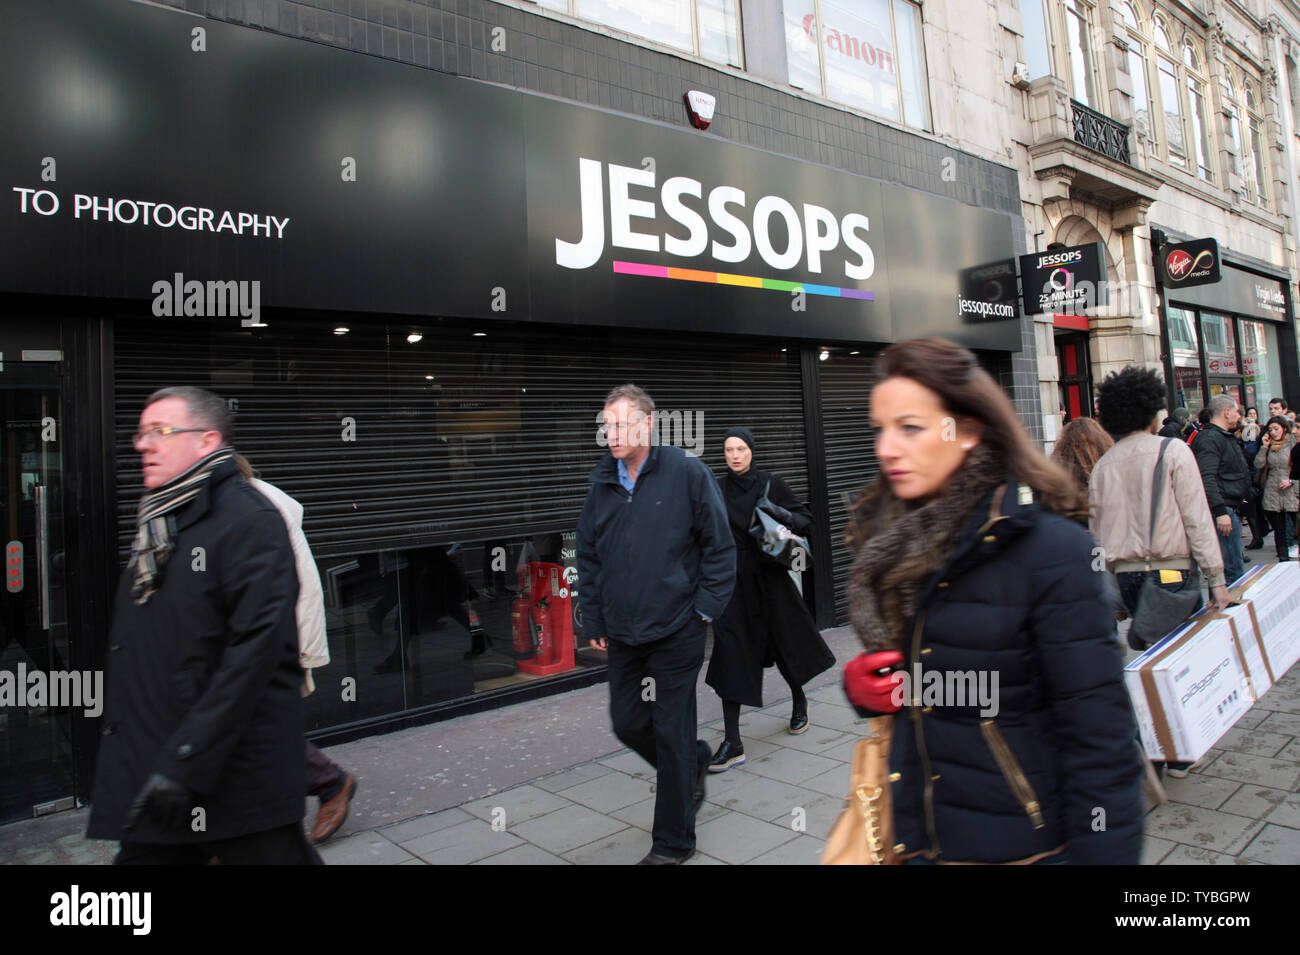 Shoppers walk past Jessops camera store,Britain's largest camera retailer which last week went into administration on the day HMV Britain's biggest music and entertainment chain went into administration ninety two years after it opened it's first store on London's Oxford St, January 15, 2013. Britain's retail landscape remains bleak with many major retailers continuing to slash prices well into the new year.     UPI/Hugo Philpott - Stock Image